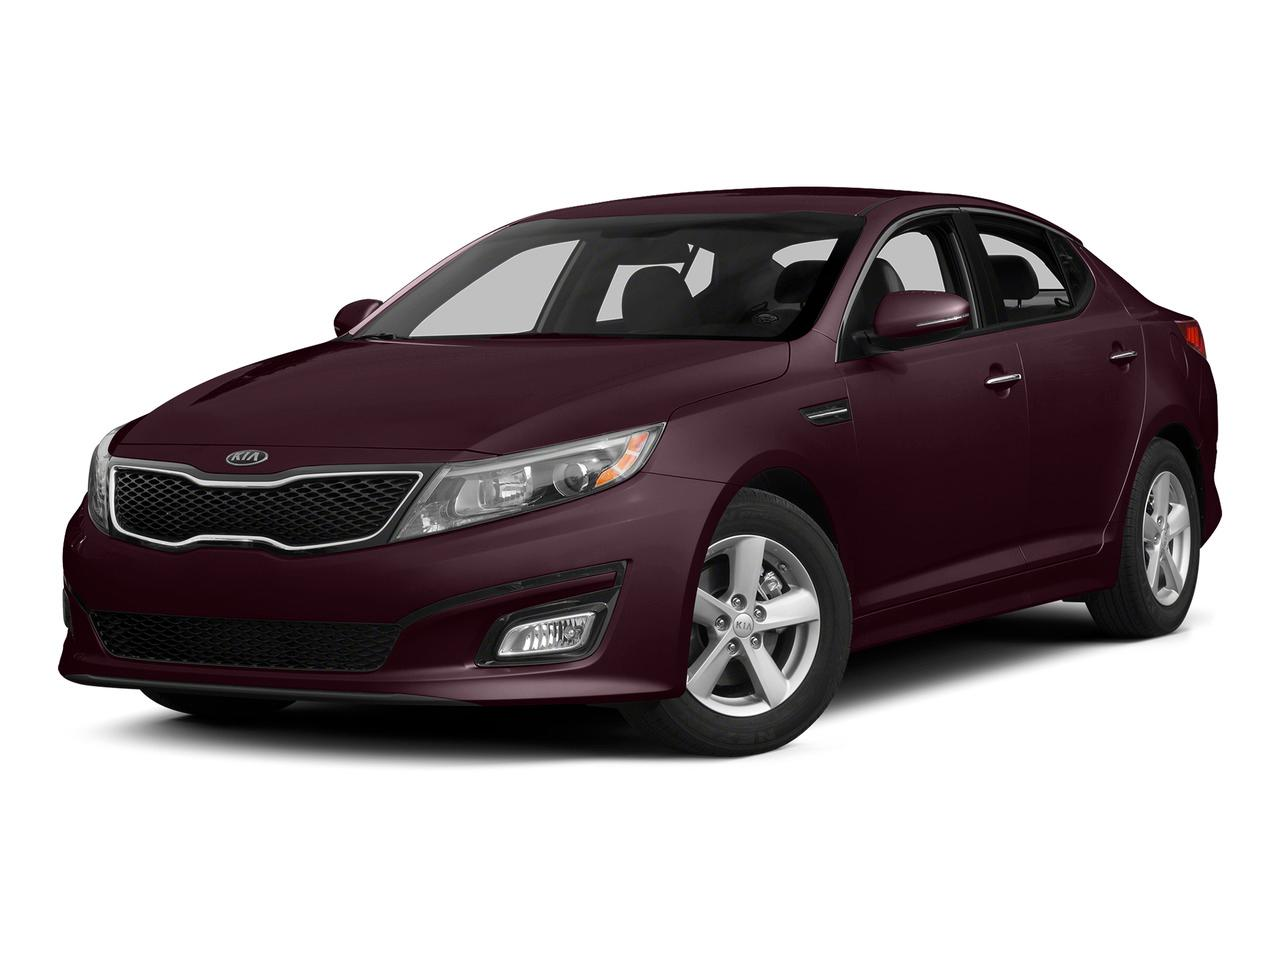 2015 Kia Optima Vehicle Photo in Safford, AZ 85546